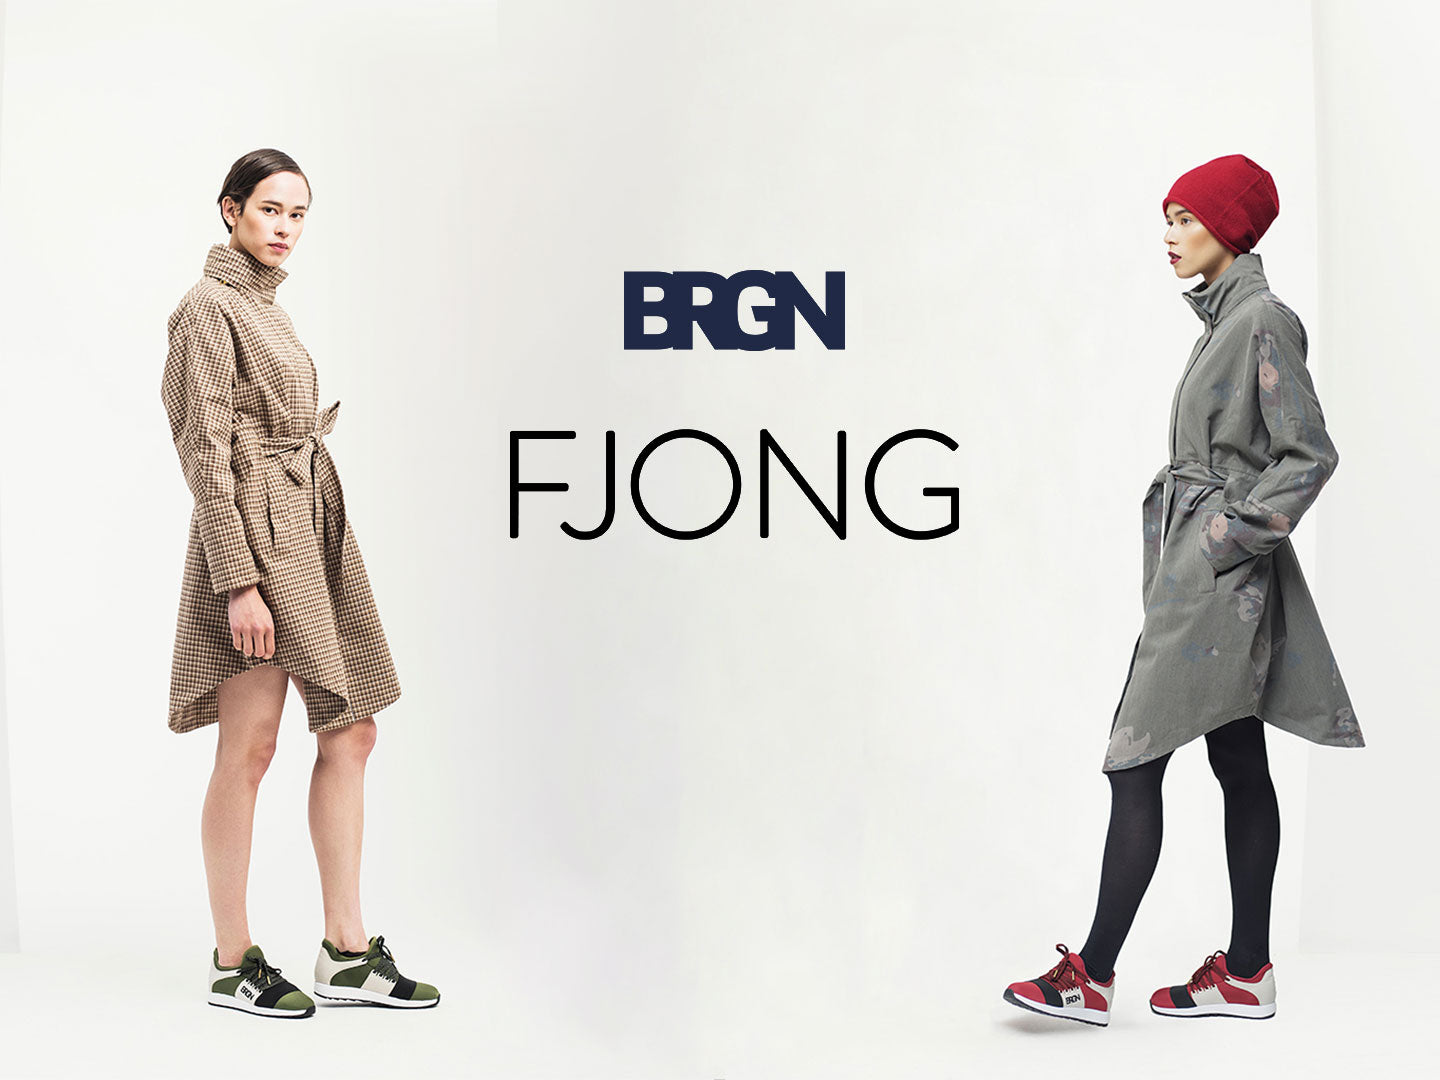 Rent BRGN on Fjong